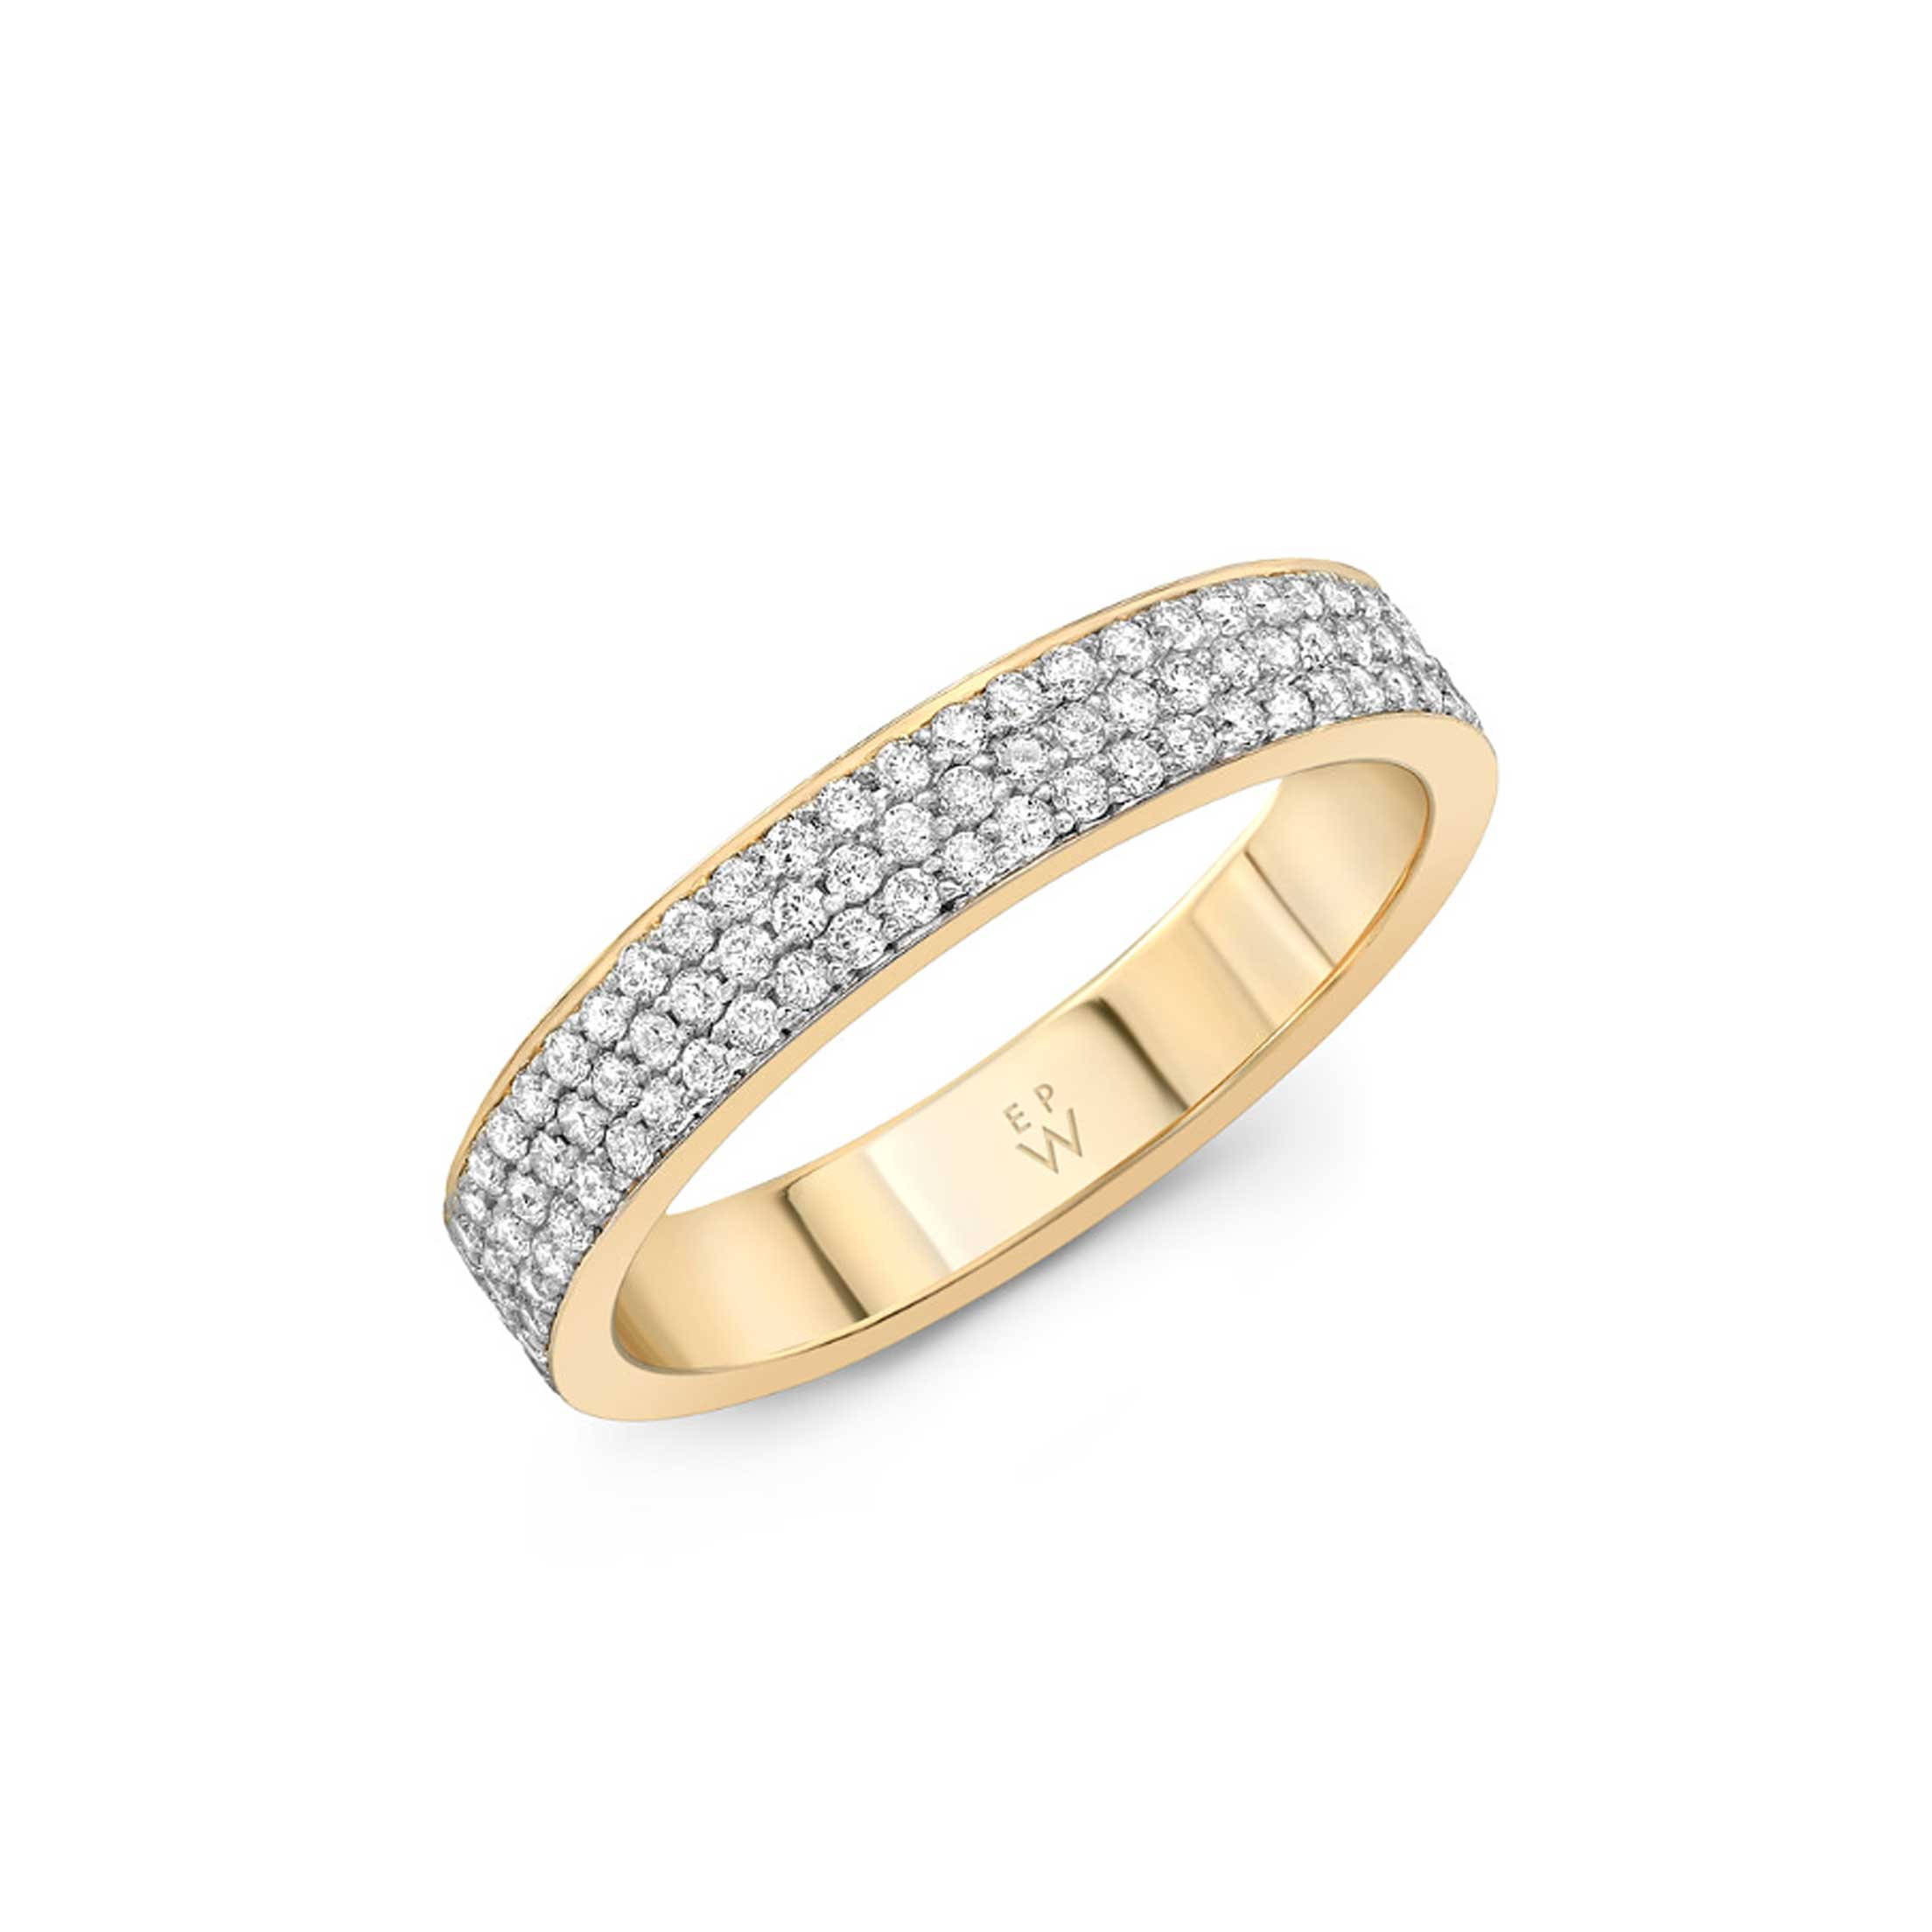 of love for band greek your trio and ring rings gold wedding jewelry his beautiful set hers elegant engagement diamond